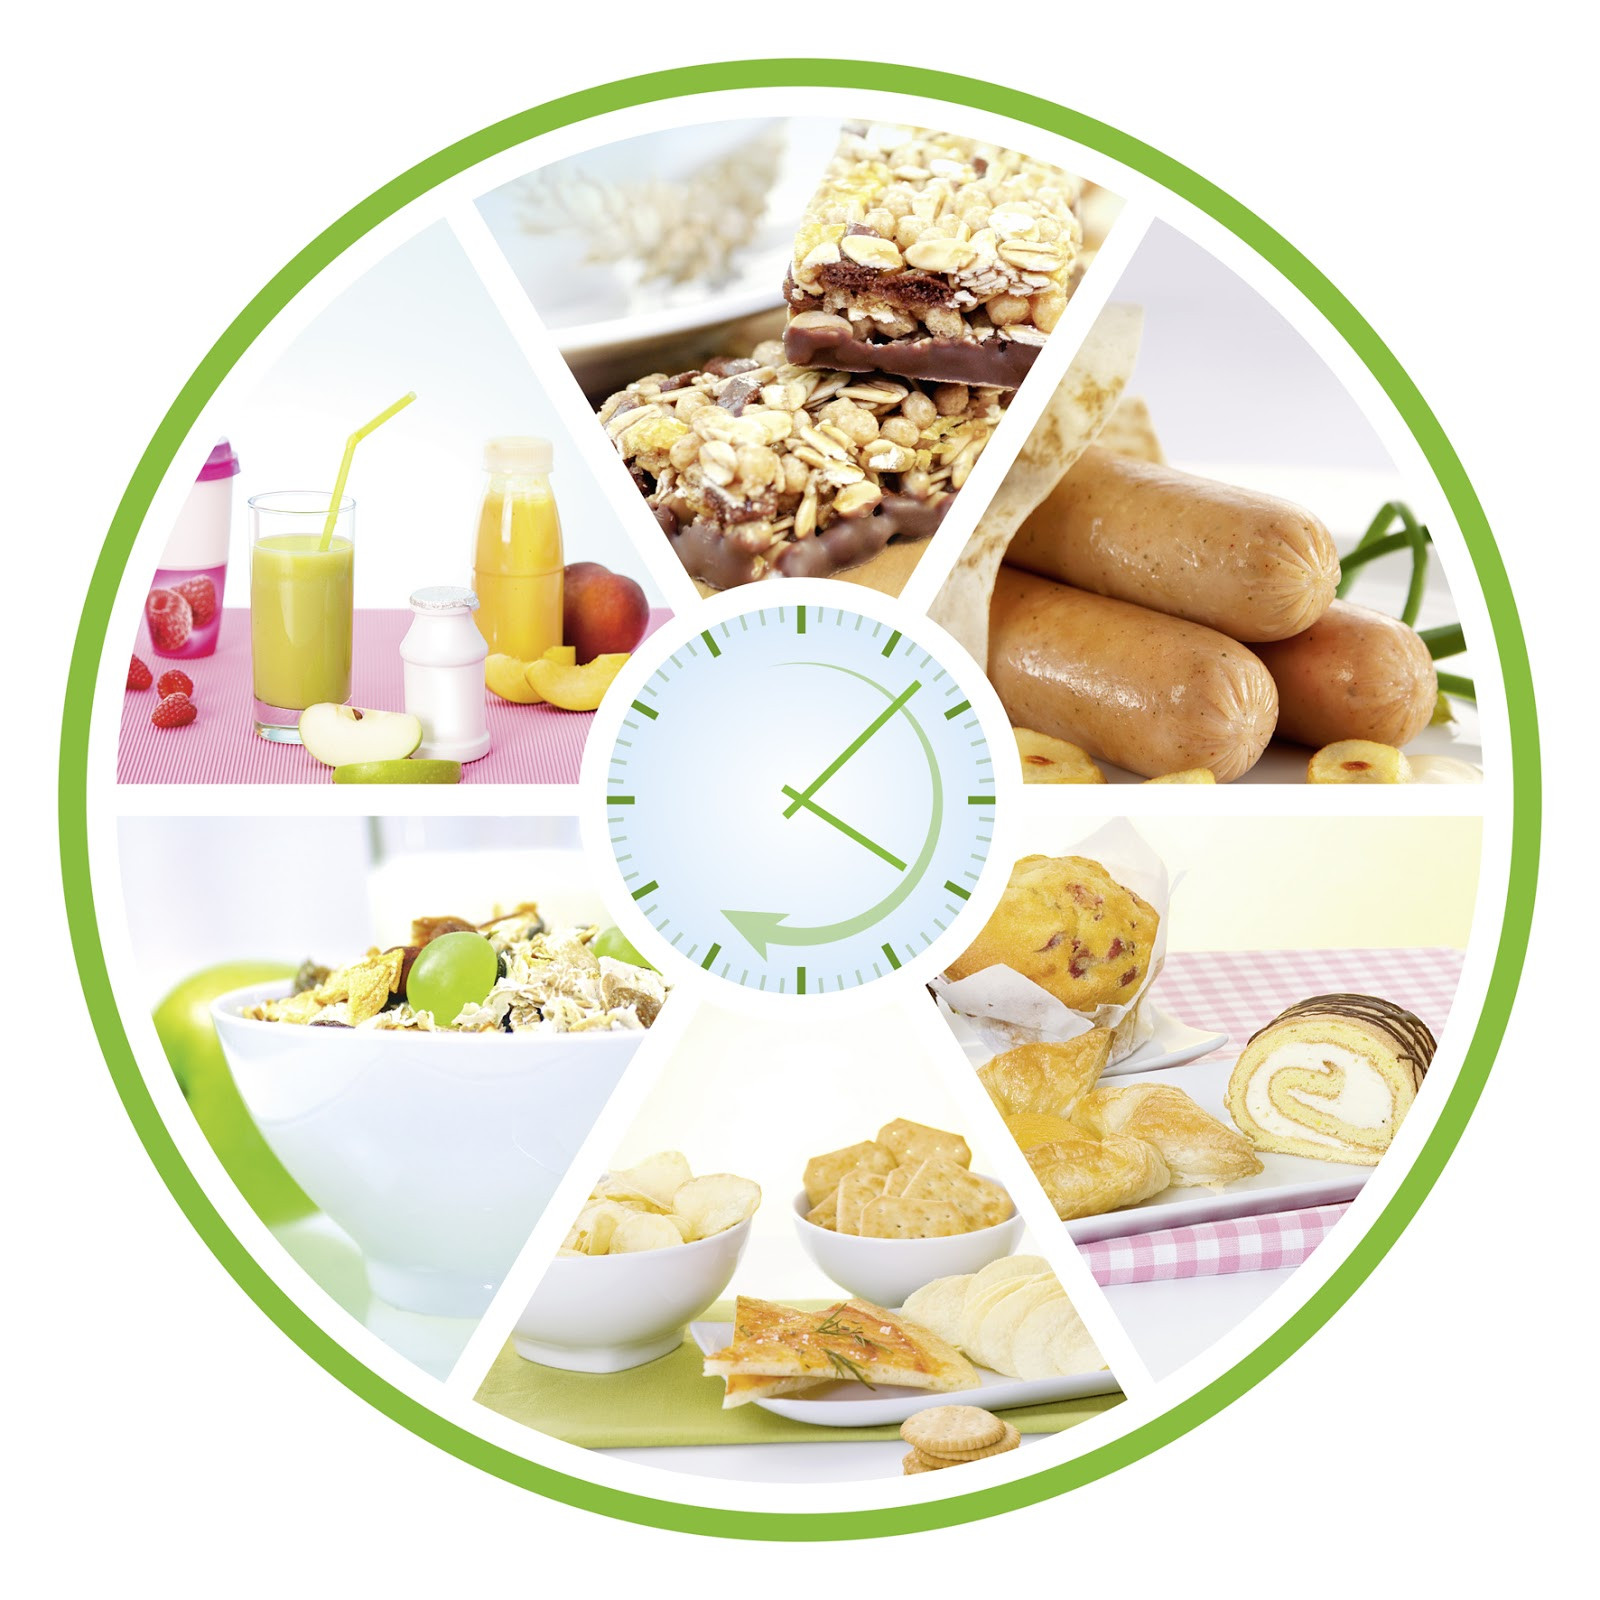 Healthy Snacks To Eat Between Meals  DIET WHAT IT REALLY MEANS Healthy Snacking